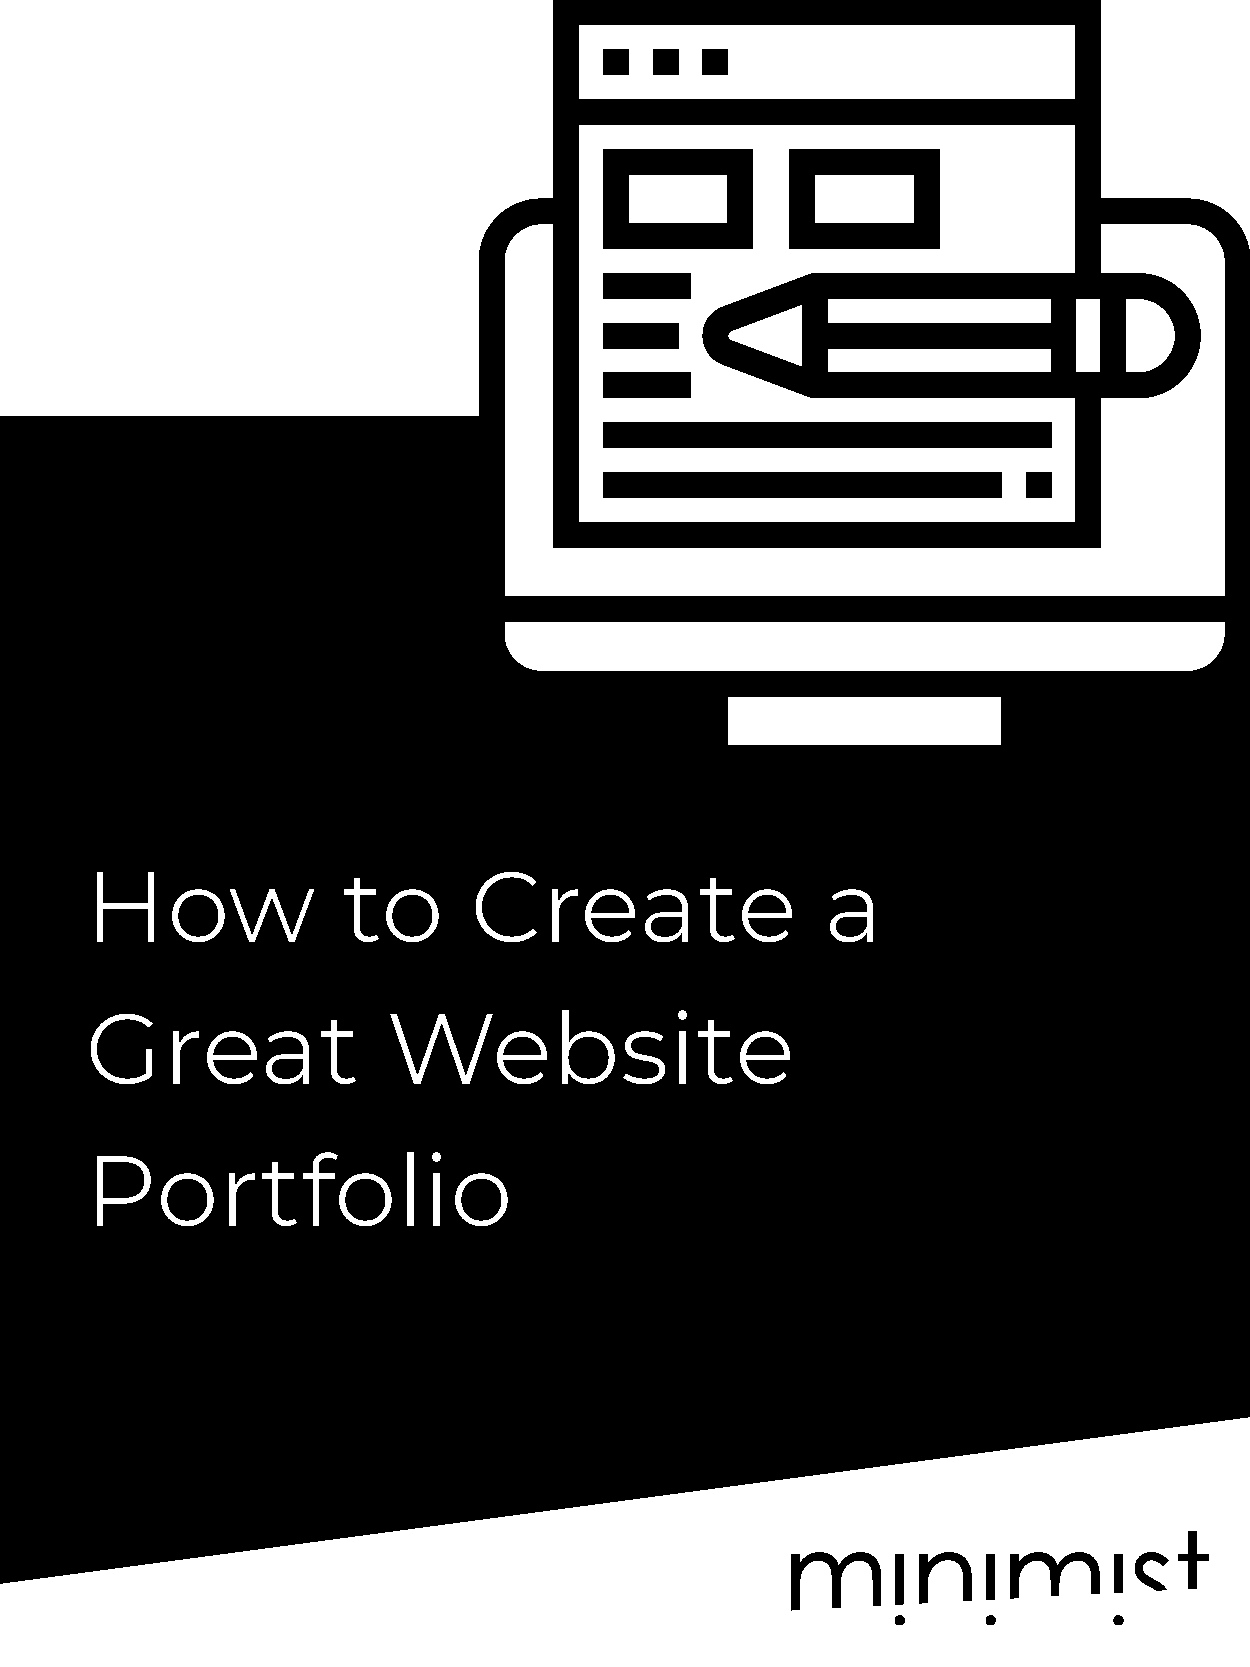 How to Create a Great Website Portfolio — Minimist Design